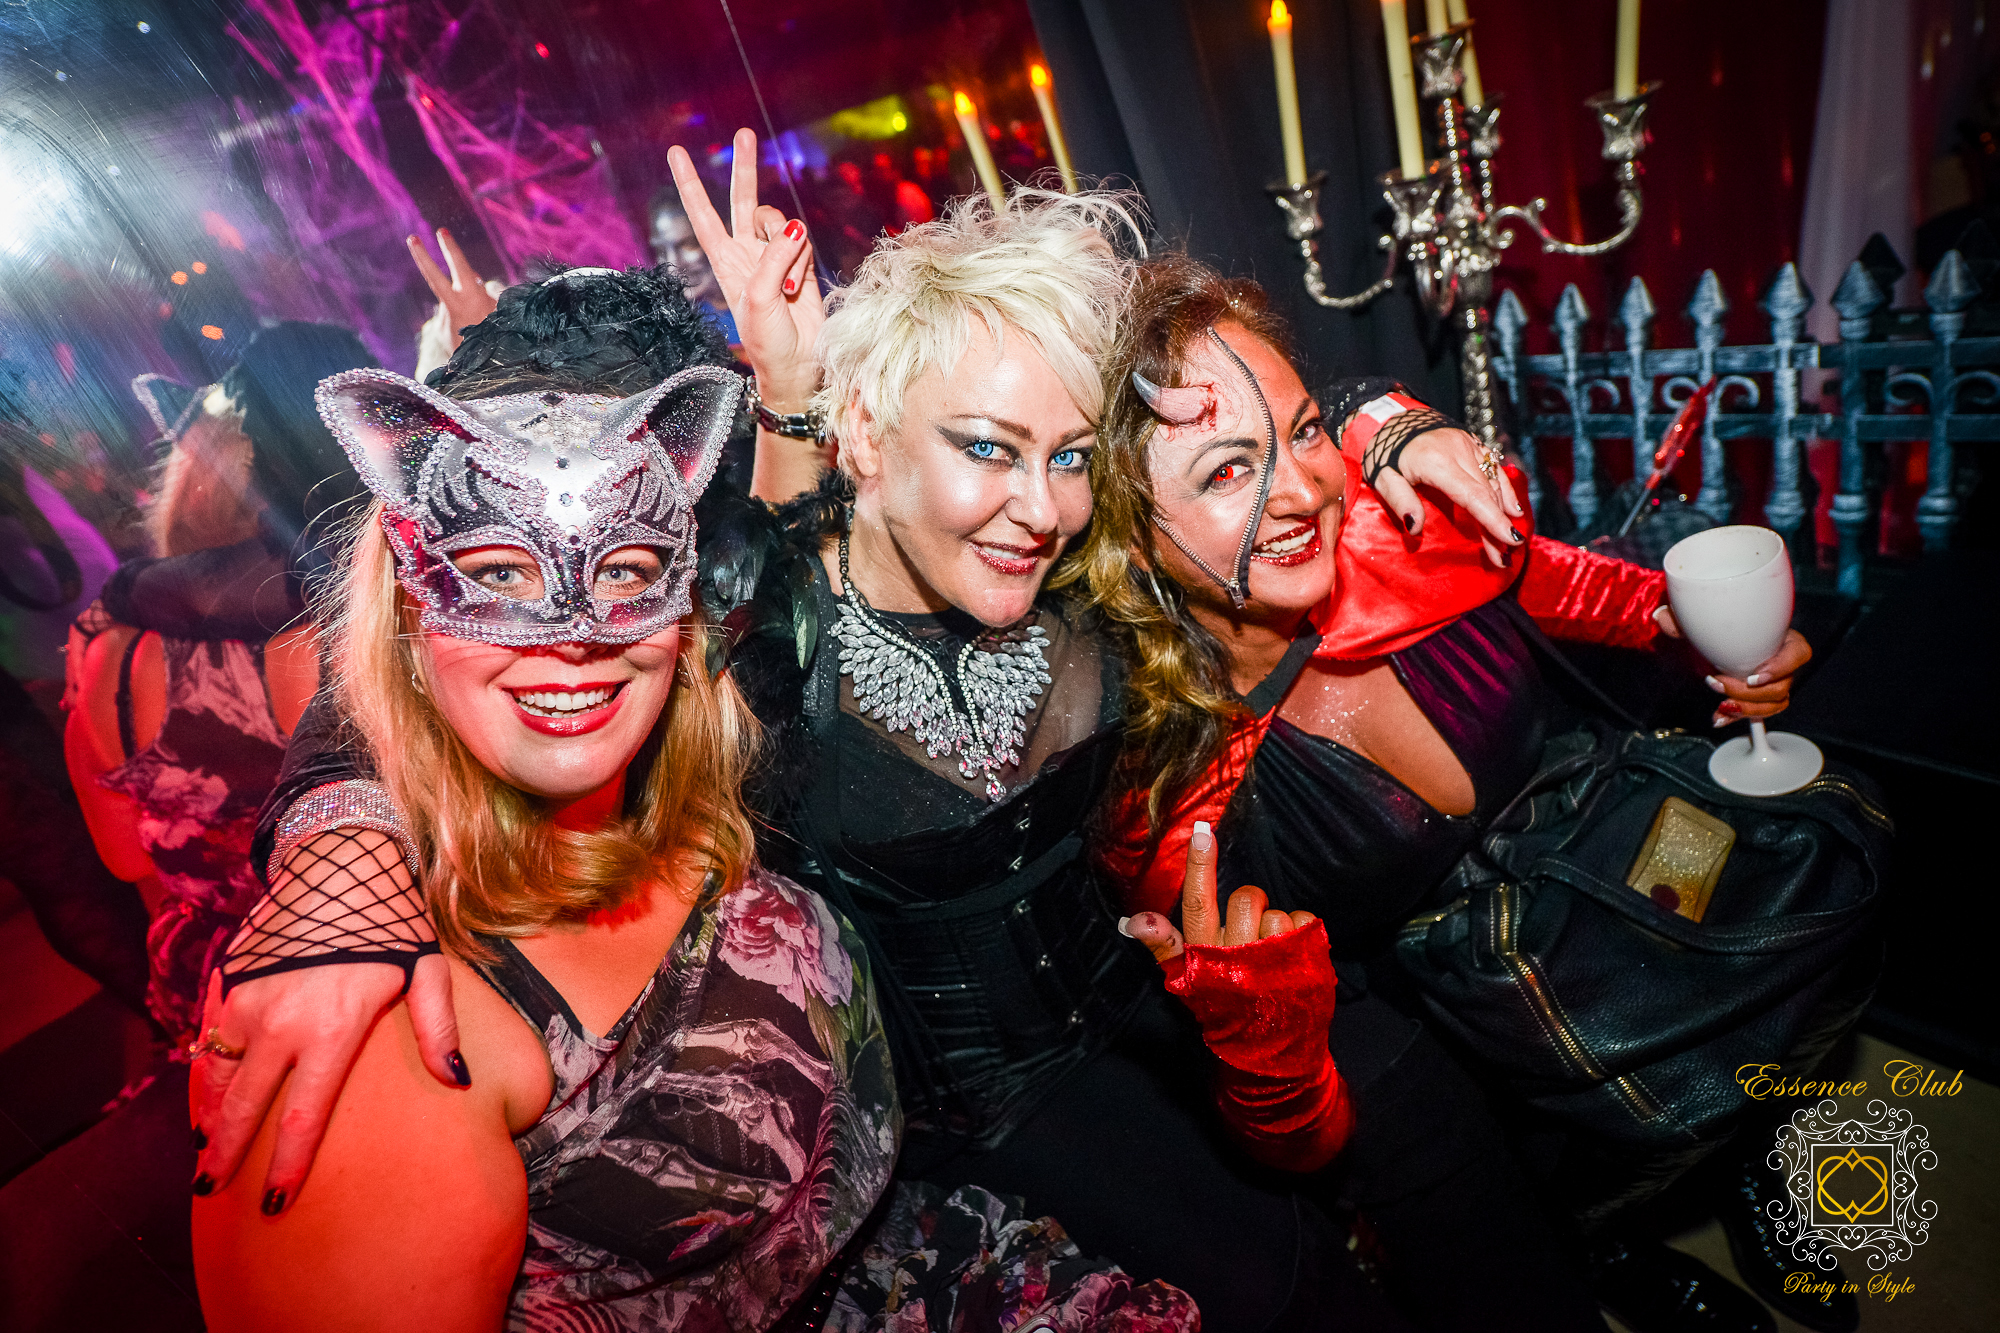 Heaven and Hell themed party event